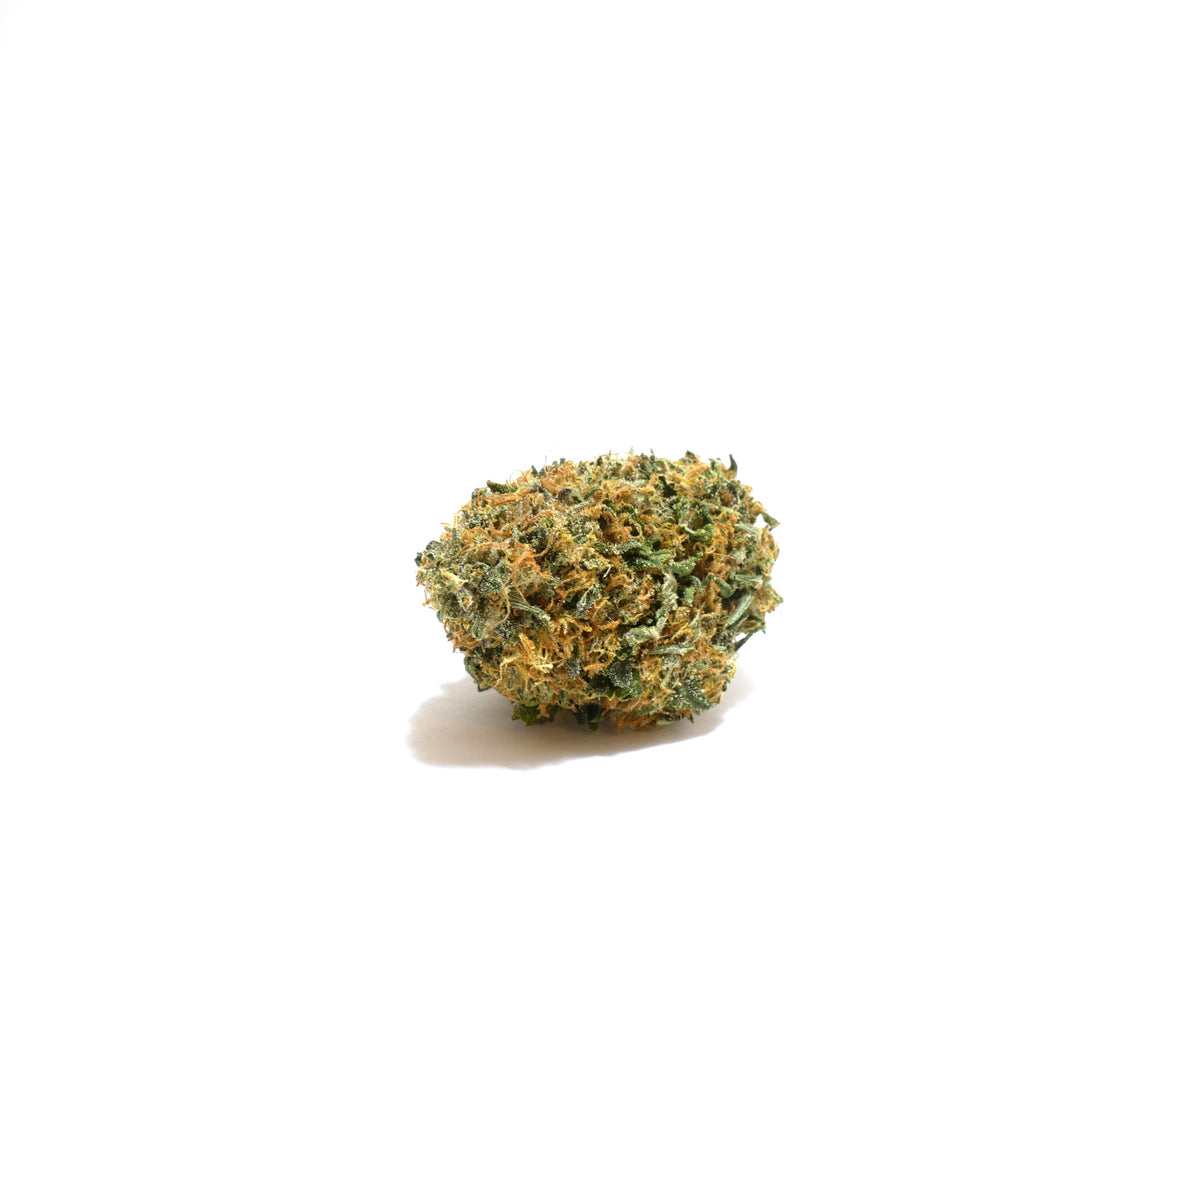 Indica-dominant hybrid with powerful body-focused effects. In its exceptional variations, pink hairs burst from bright green buds barely visible under a blanket of sugar-like trichomes, with traces of a sweet vanilla and candy perfume. THC 21-24% CBD 0-1%. Sold by Prairie Records. Find it in Warman and Saskatchewan.